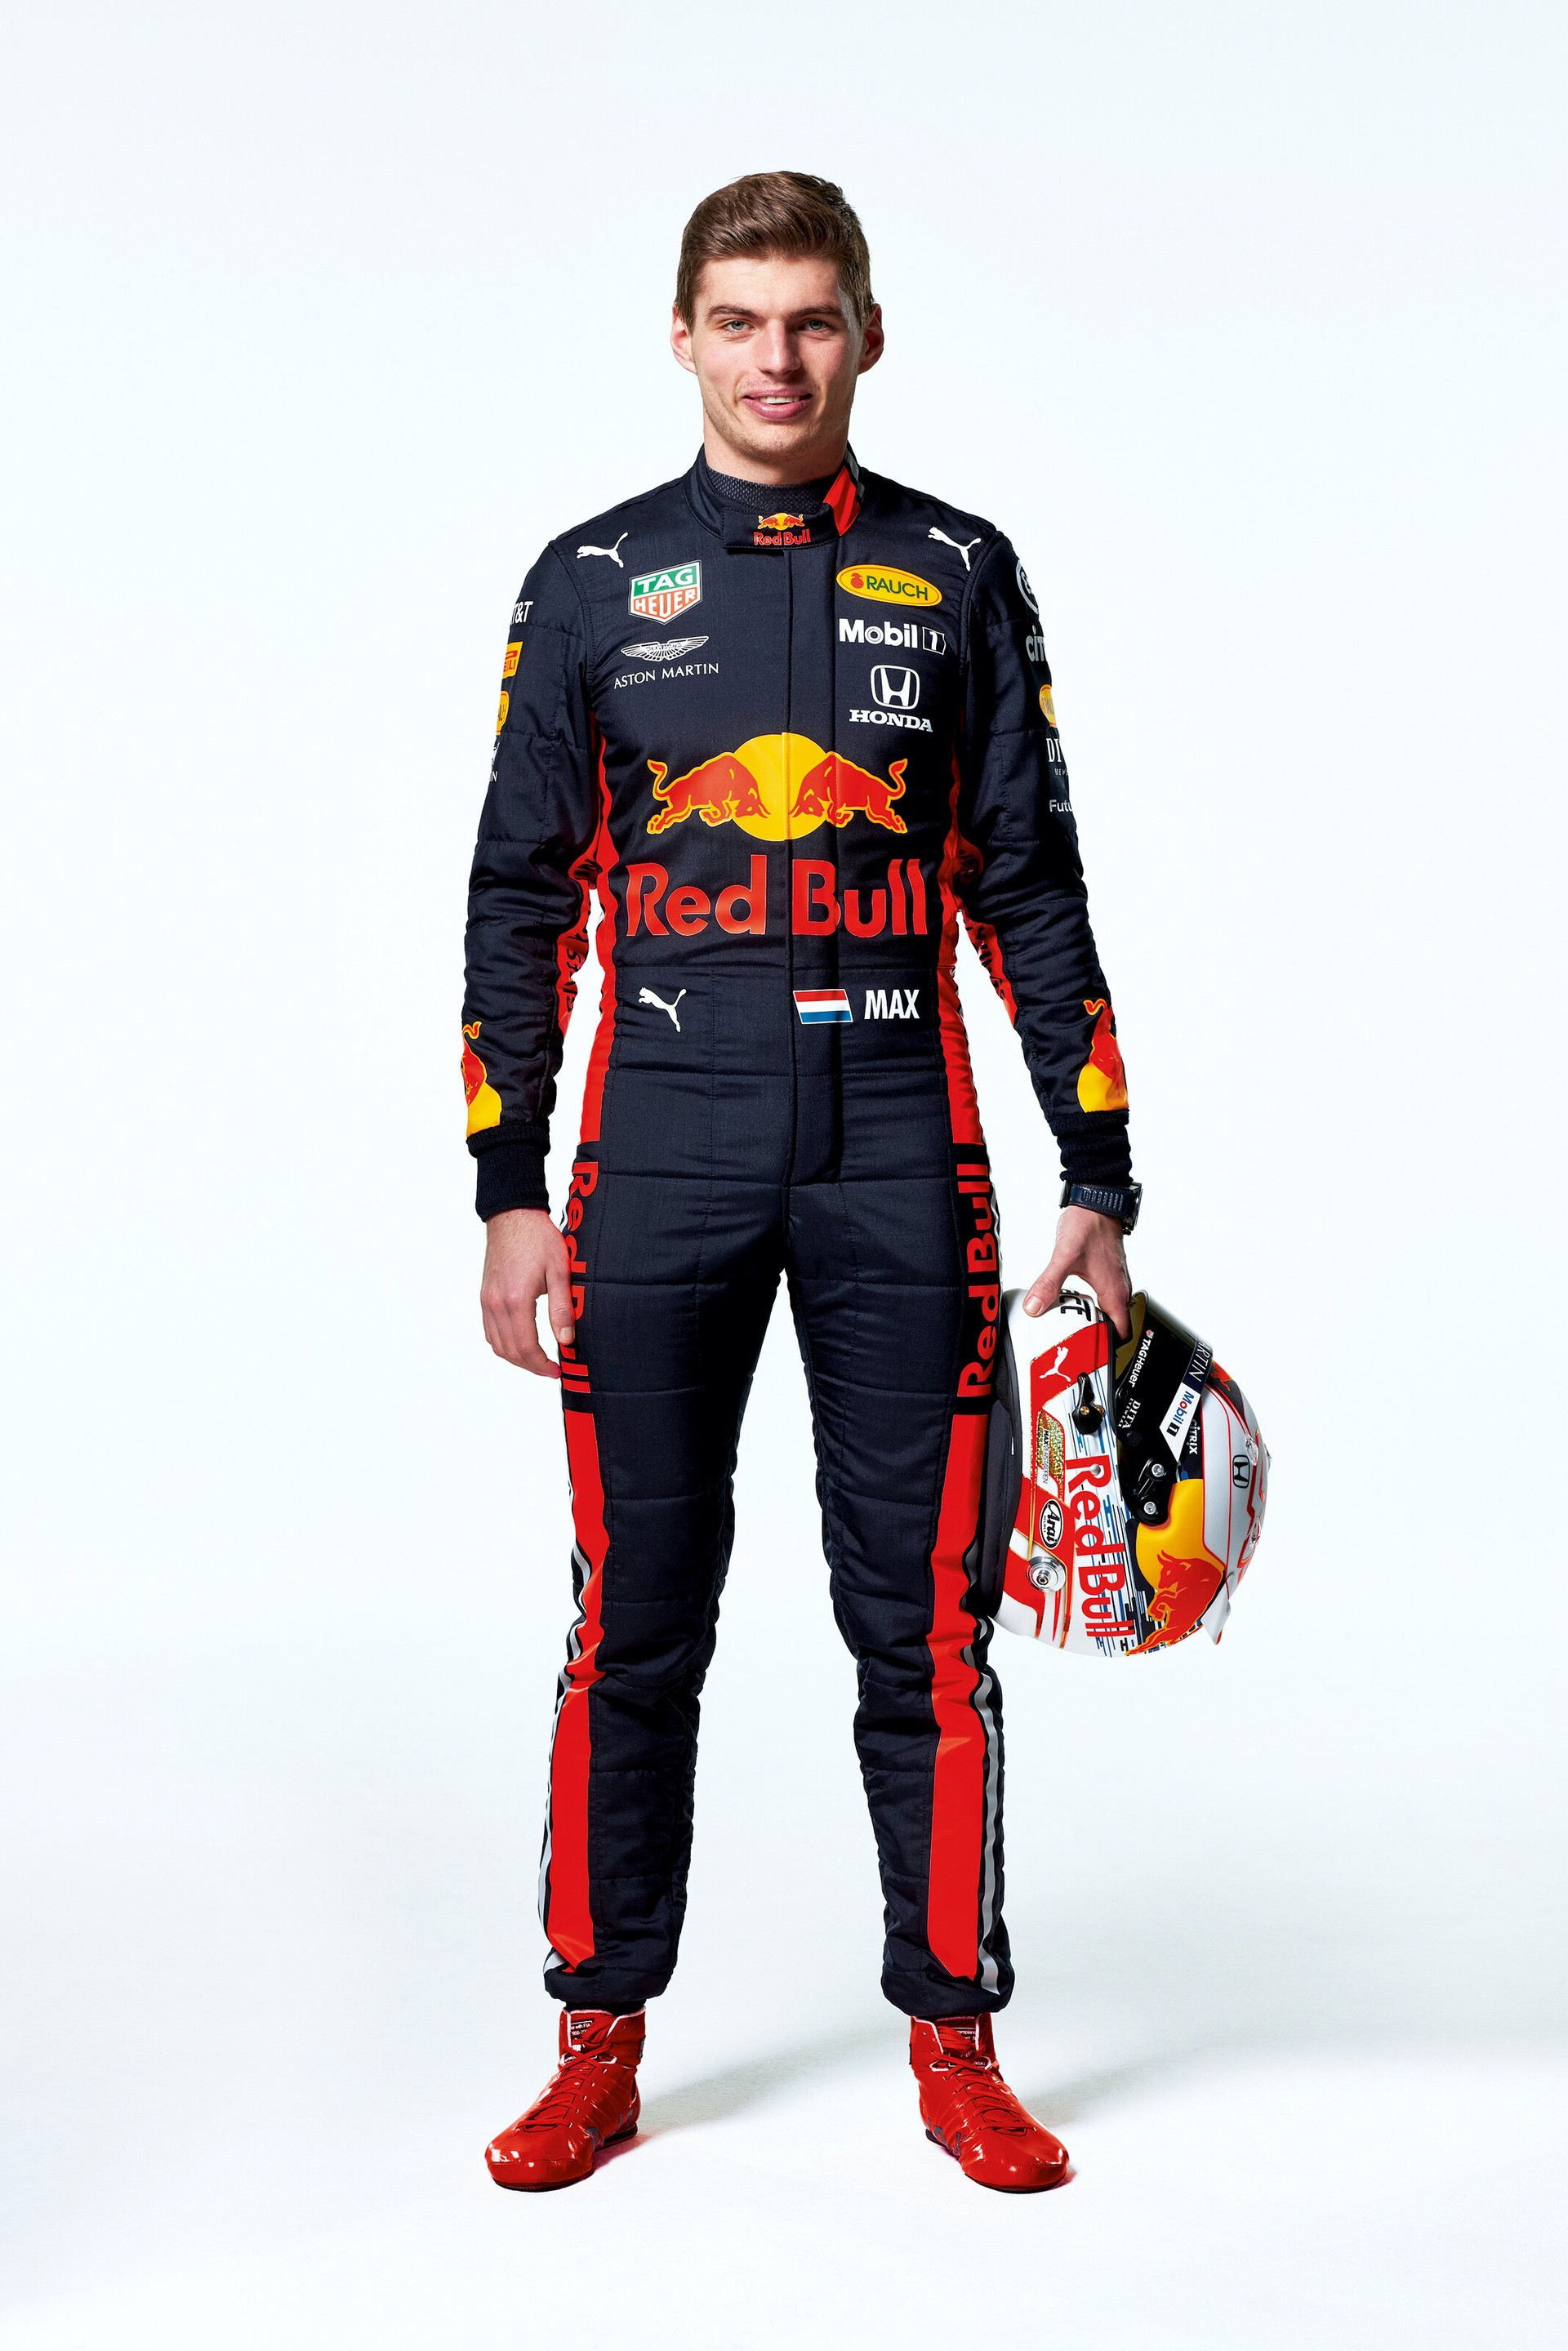 Max Verstappen seen during the Red Bull Racing 2019 Studio Shoot, February 2019, United Kingdom // Dustin Snipes/Red Bull Content Pool // AP-1YFPFH89H1W11 // Usage for editorial use only // Please go to www.redbullcontentpool.com for further information. //